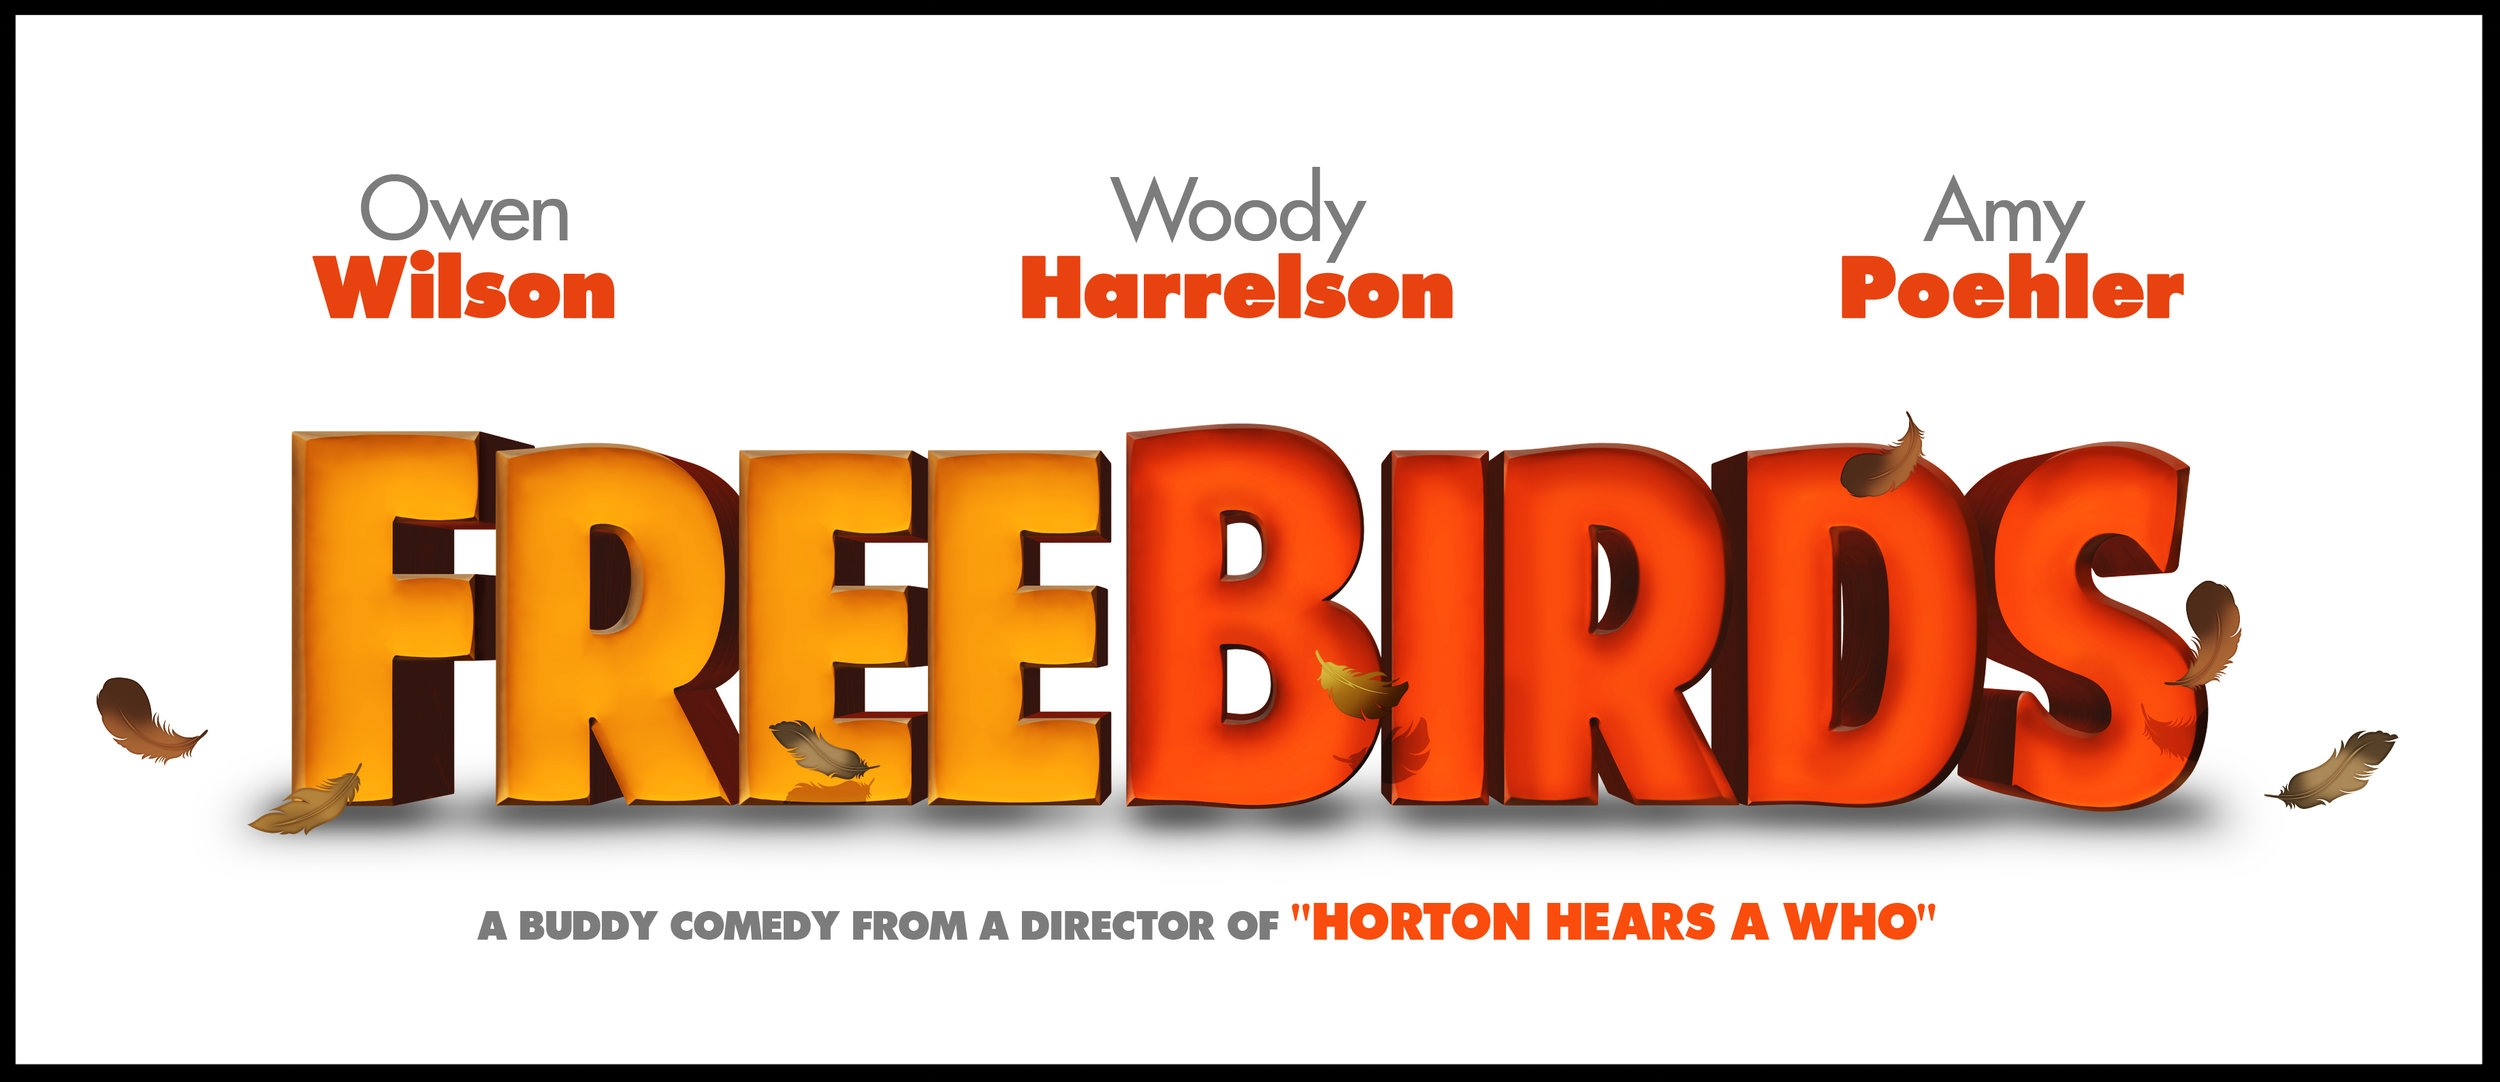 FREE BIRDS  |  RELATIVITY MEDIA WORLDWIDE / REEL FX ANIMATION |  RÉALISATEUR : JIMMY HAYWARD | 2013